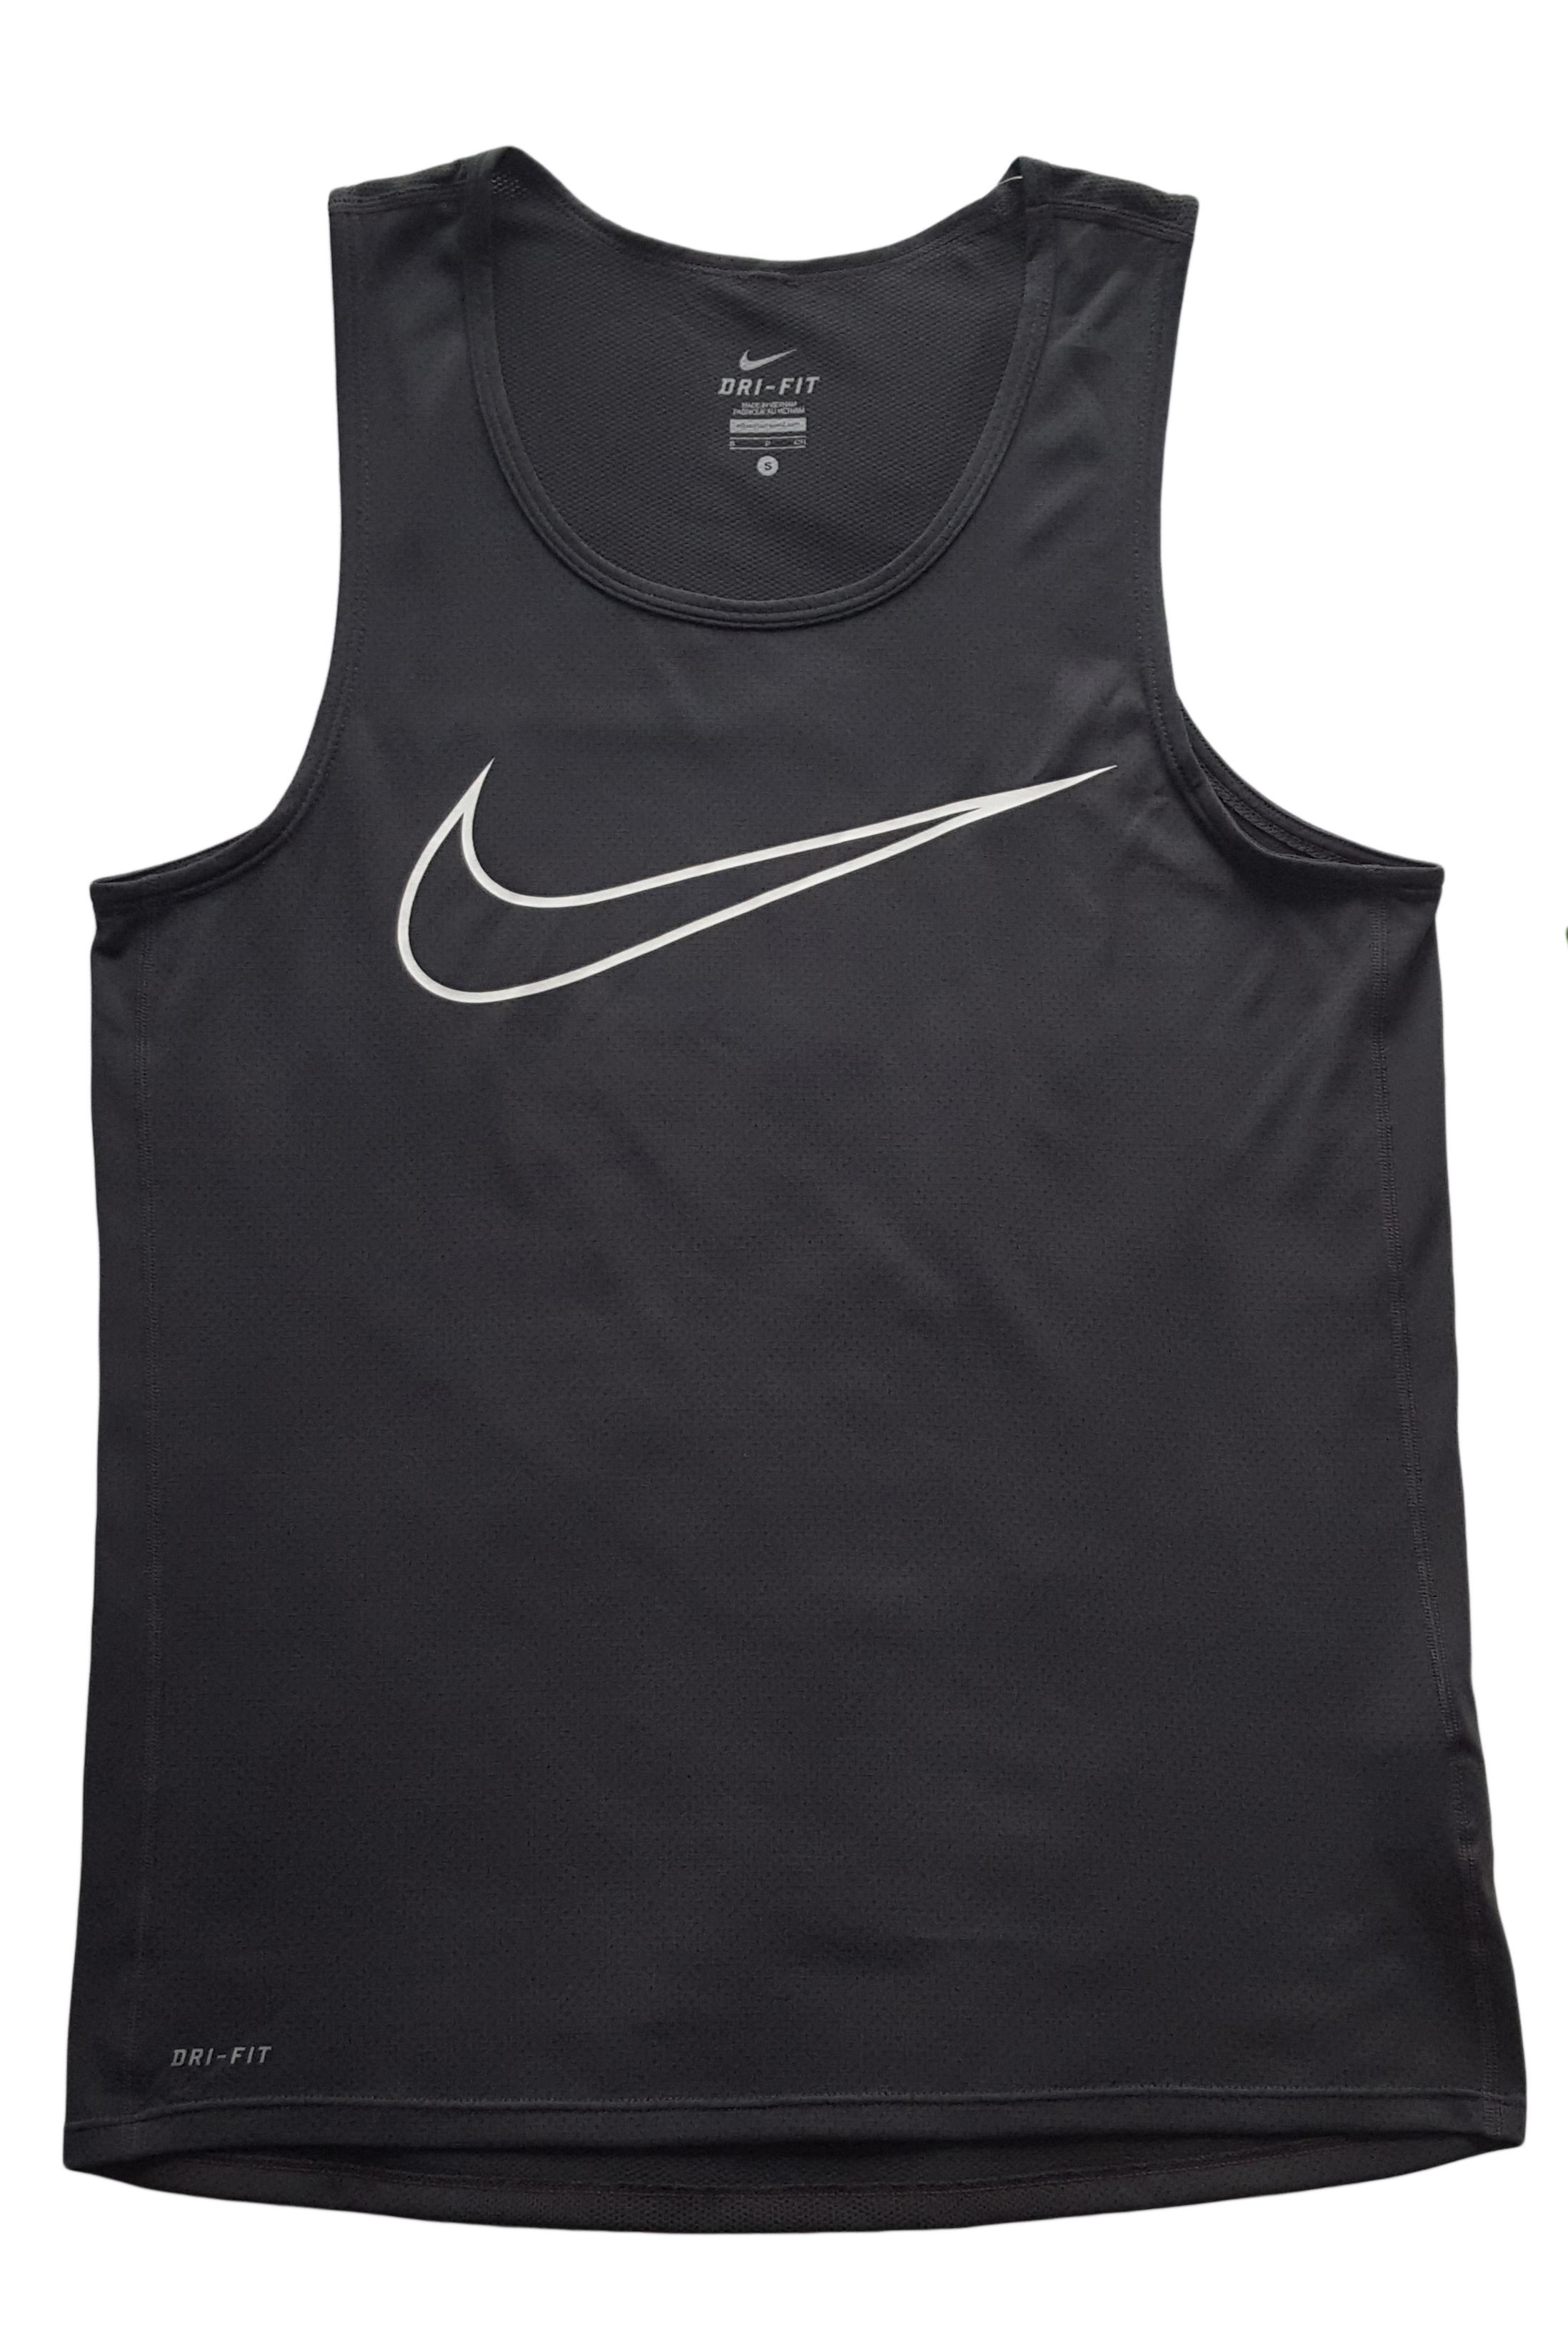 24eb759b50aa17 Home brands nike mens graphic contour dri fit mesh running tank top size  small jpg 2195x3290